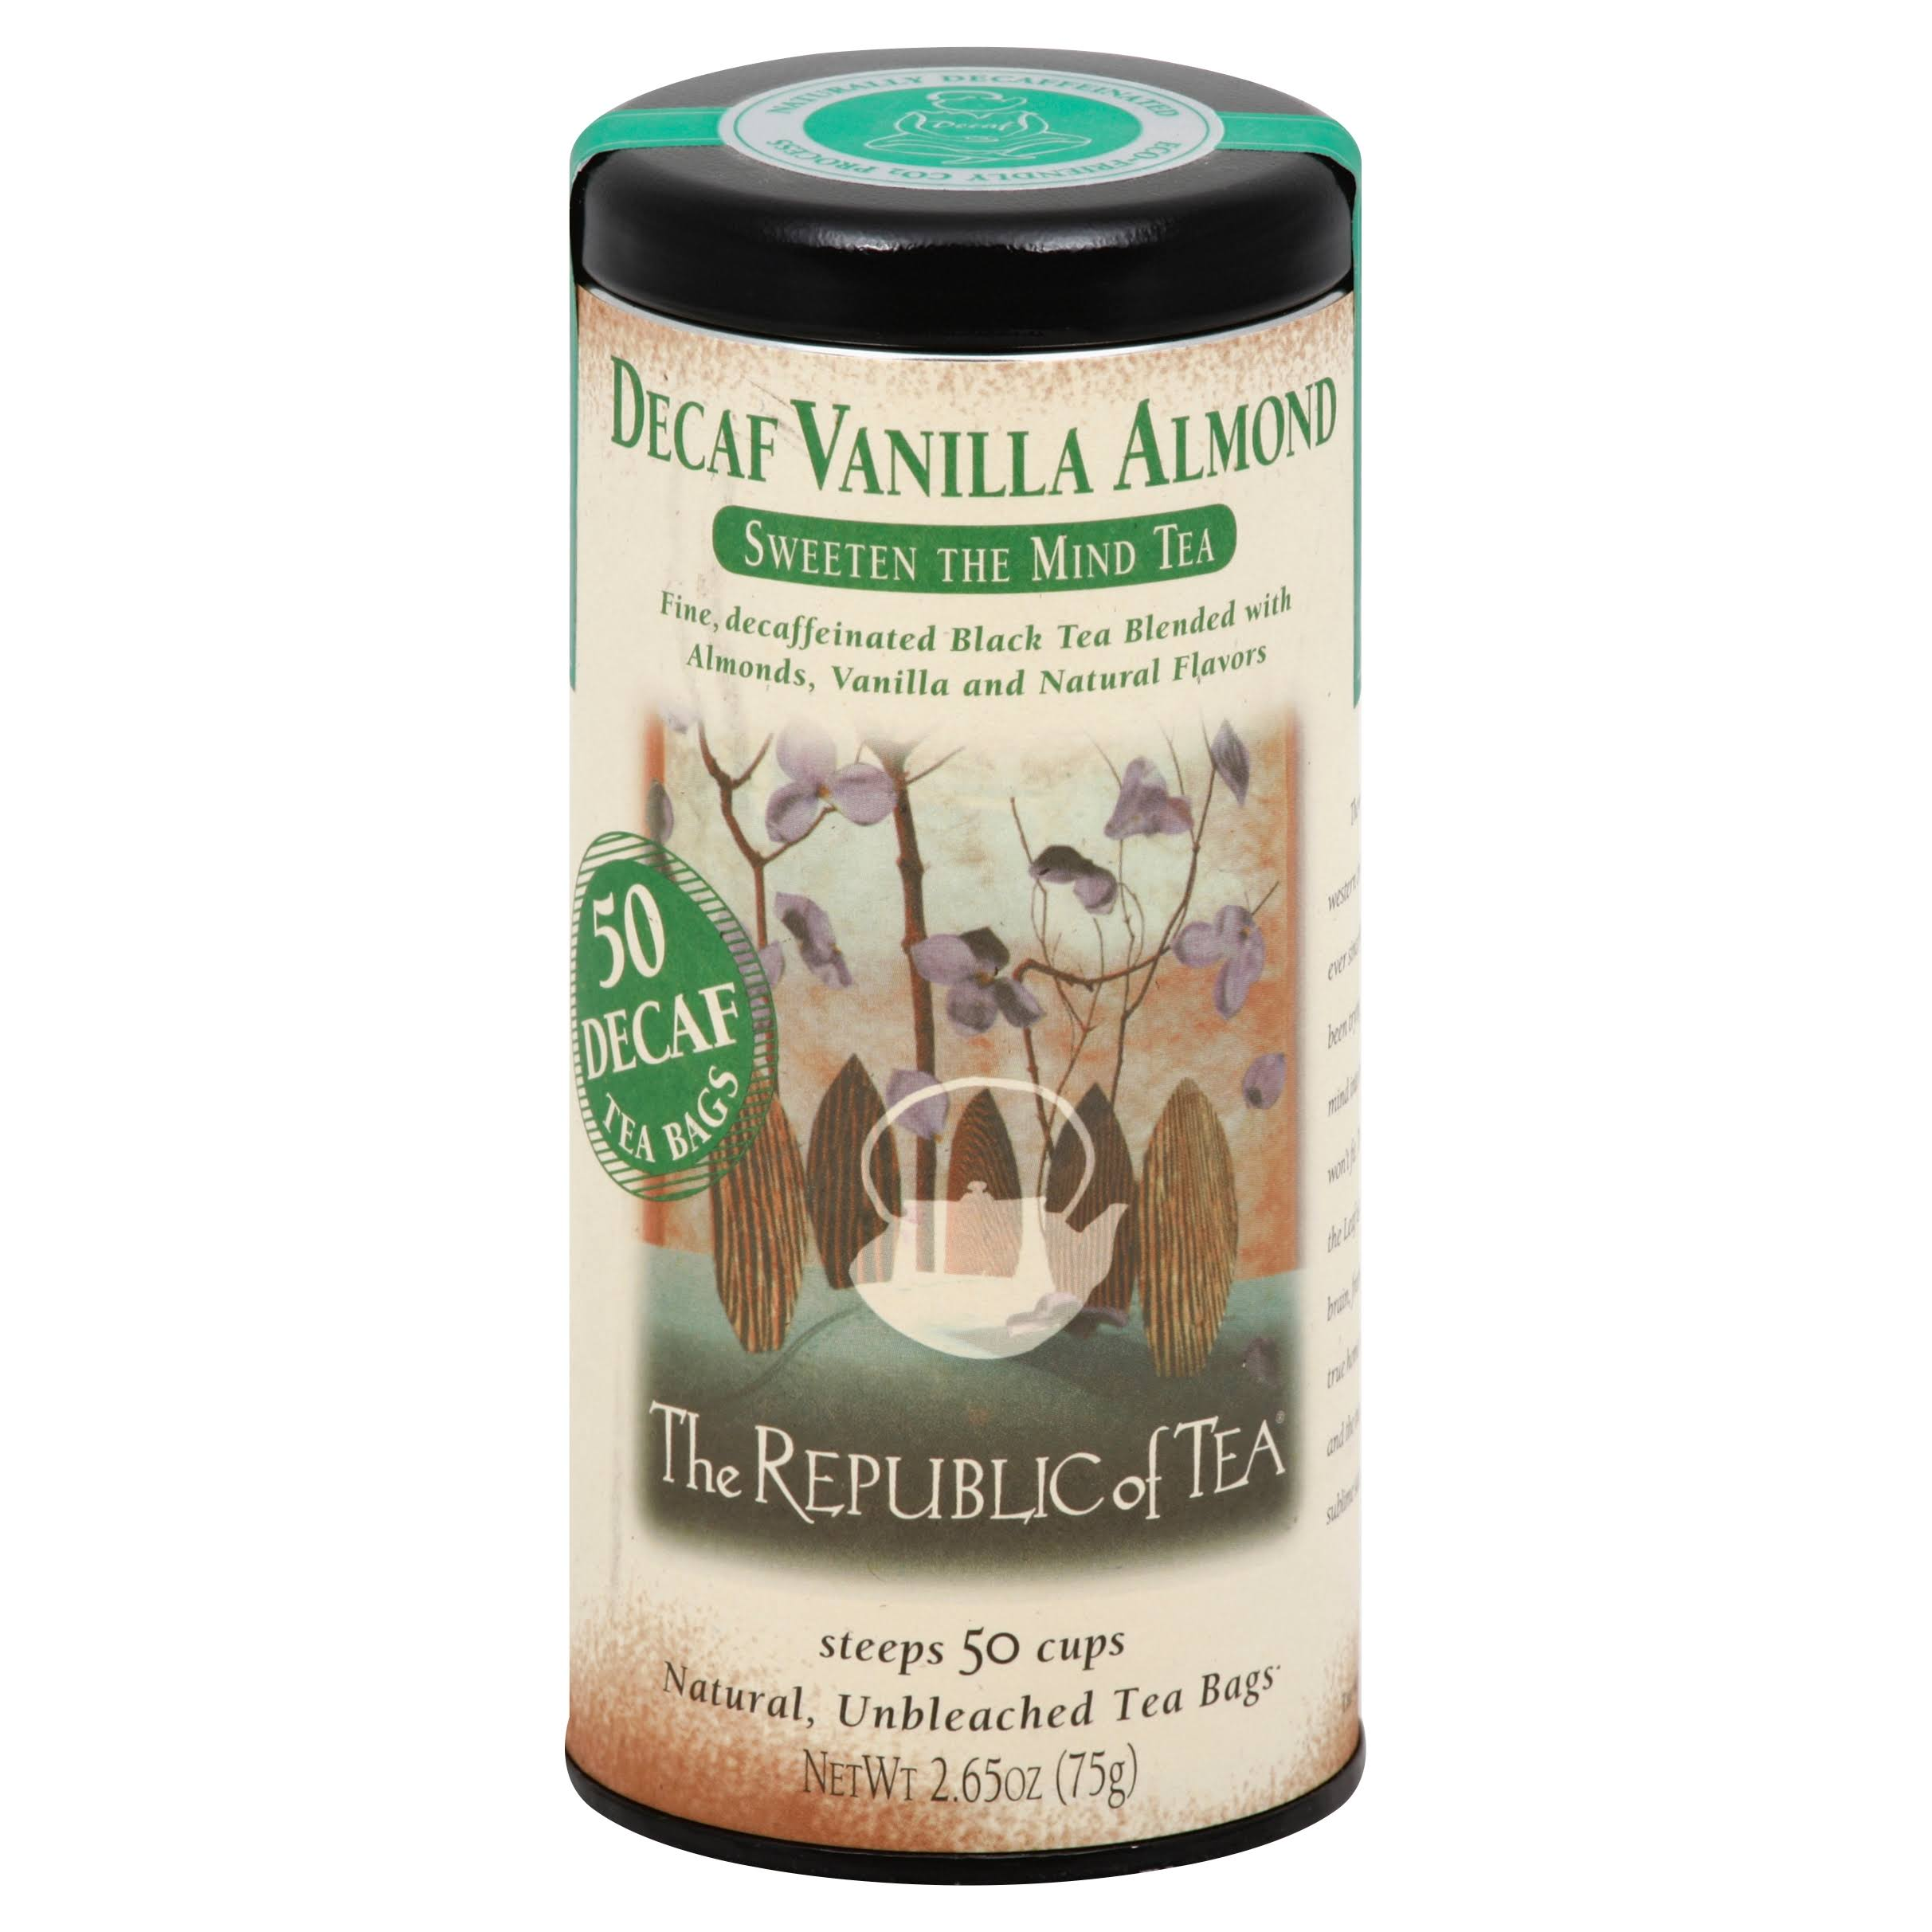 The Republic Of Tea Decaf Vanilla Almond Black Tea - 50 Tea Bags